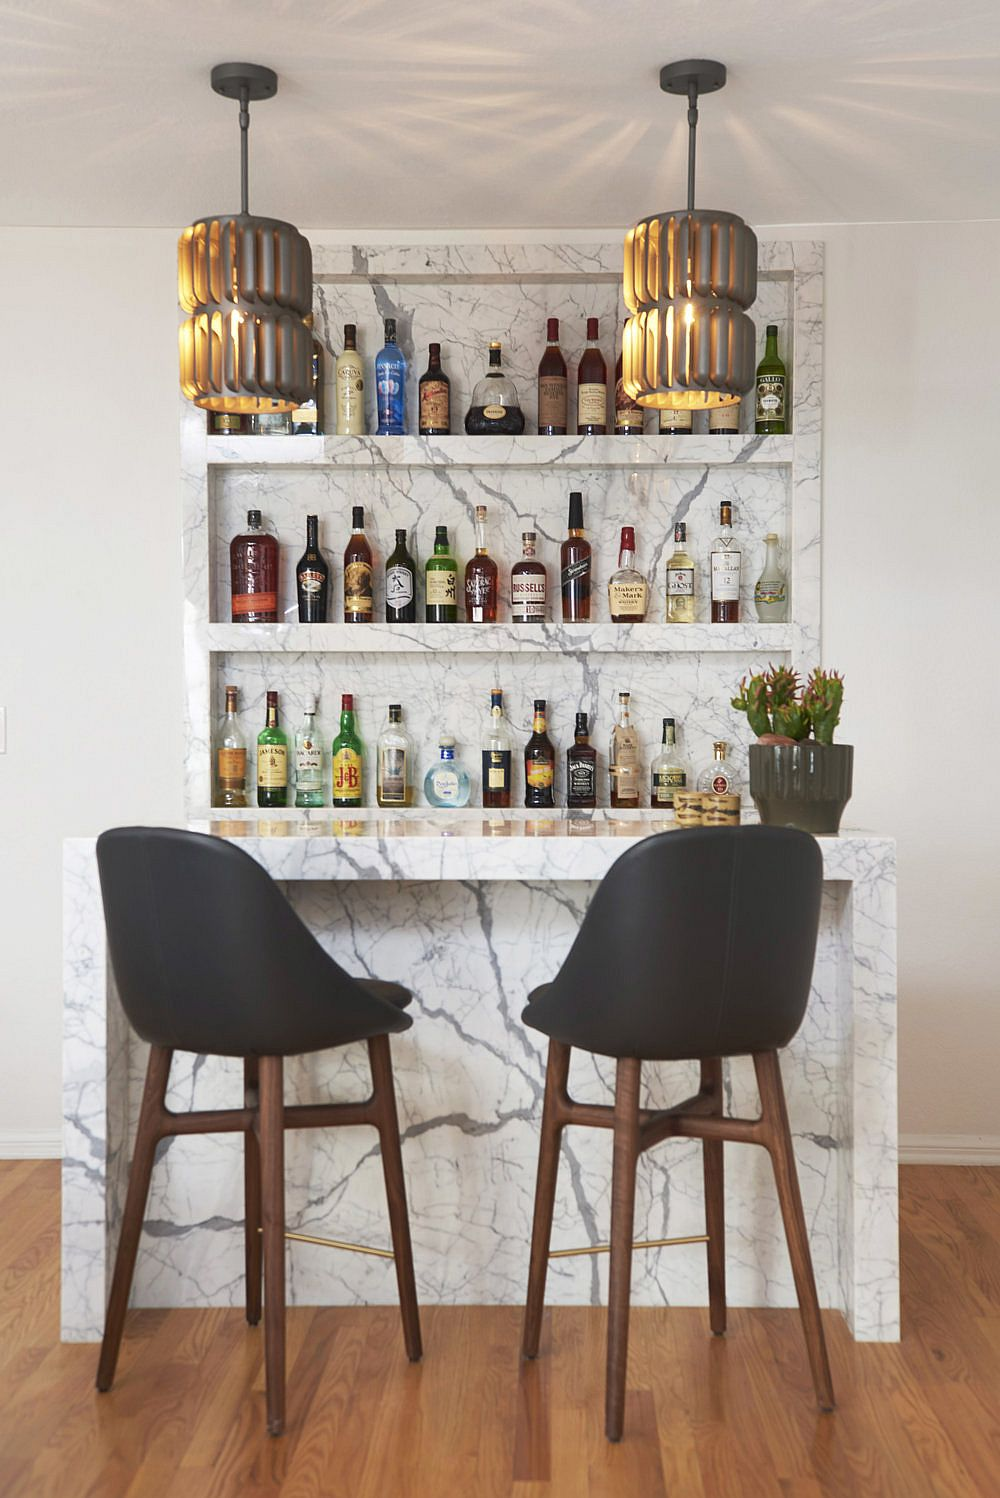 Home bar with marble backsplash and counter along with a couple of bar stools